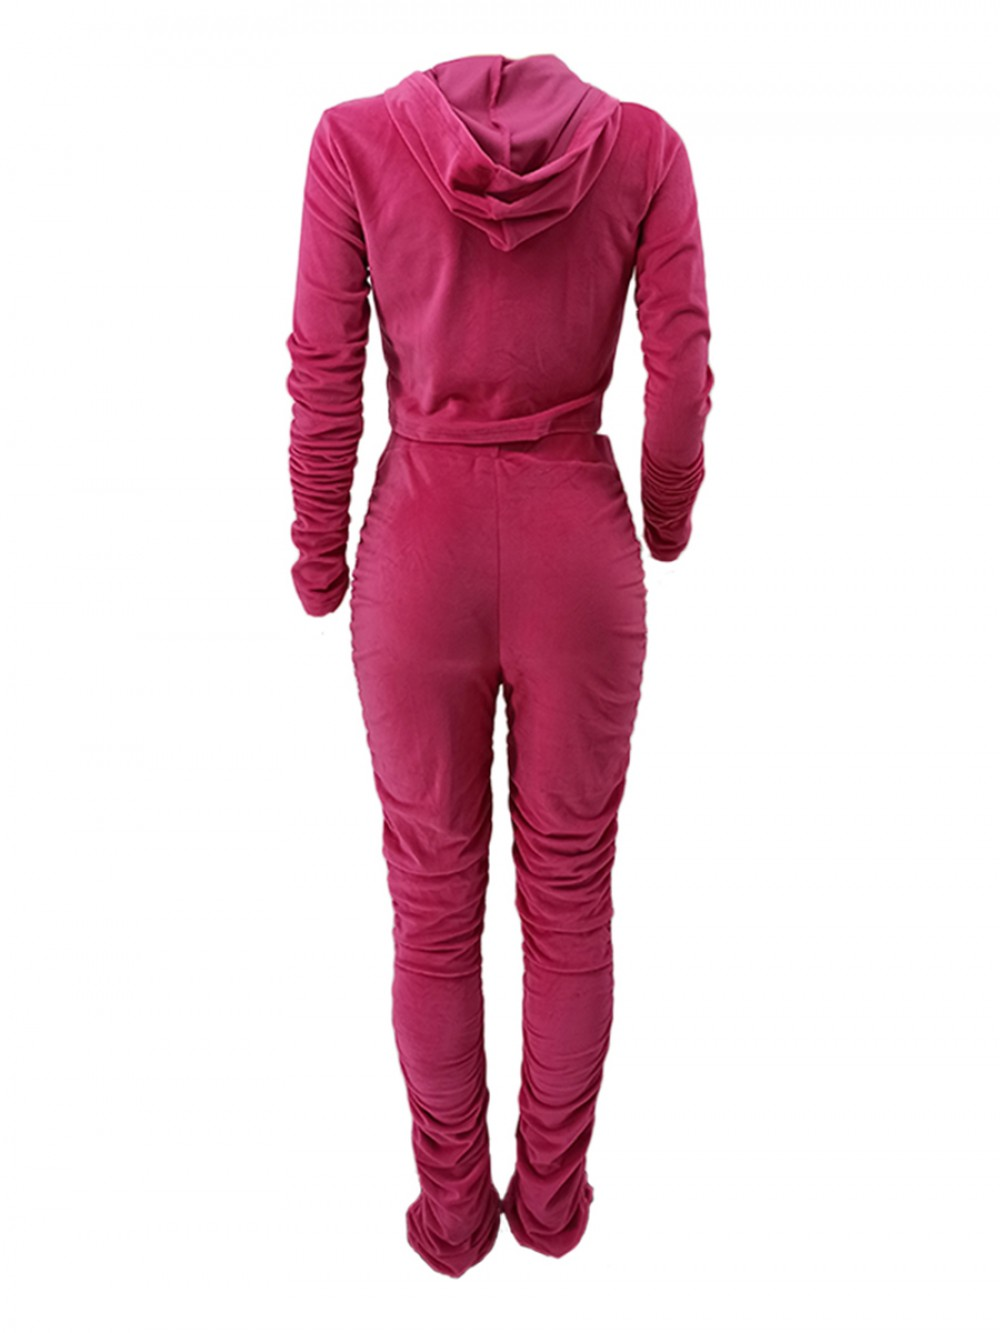 Pink High Waist Two Piece Outfit With Zipping Lady Clothing